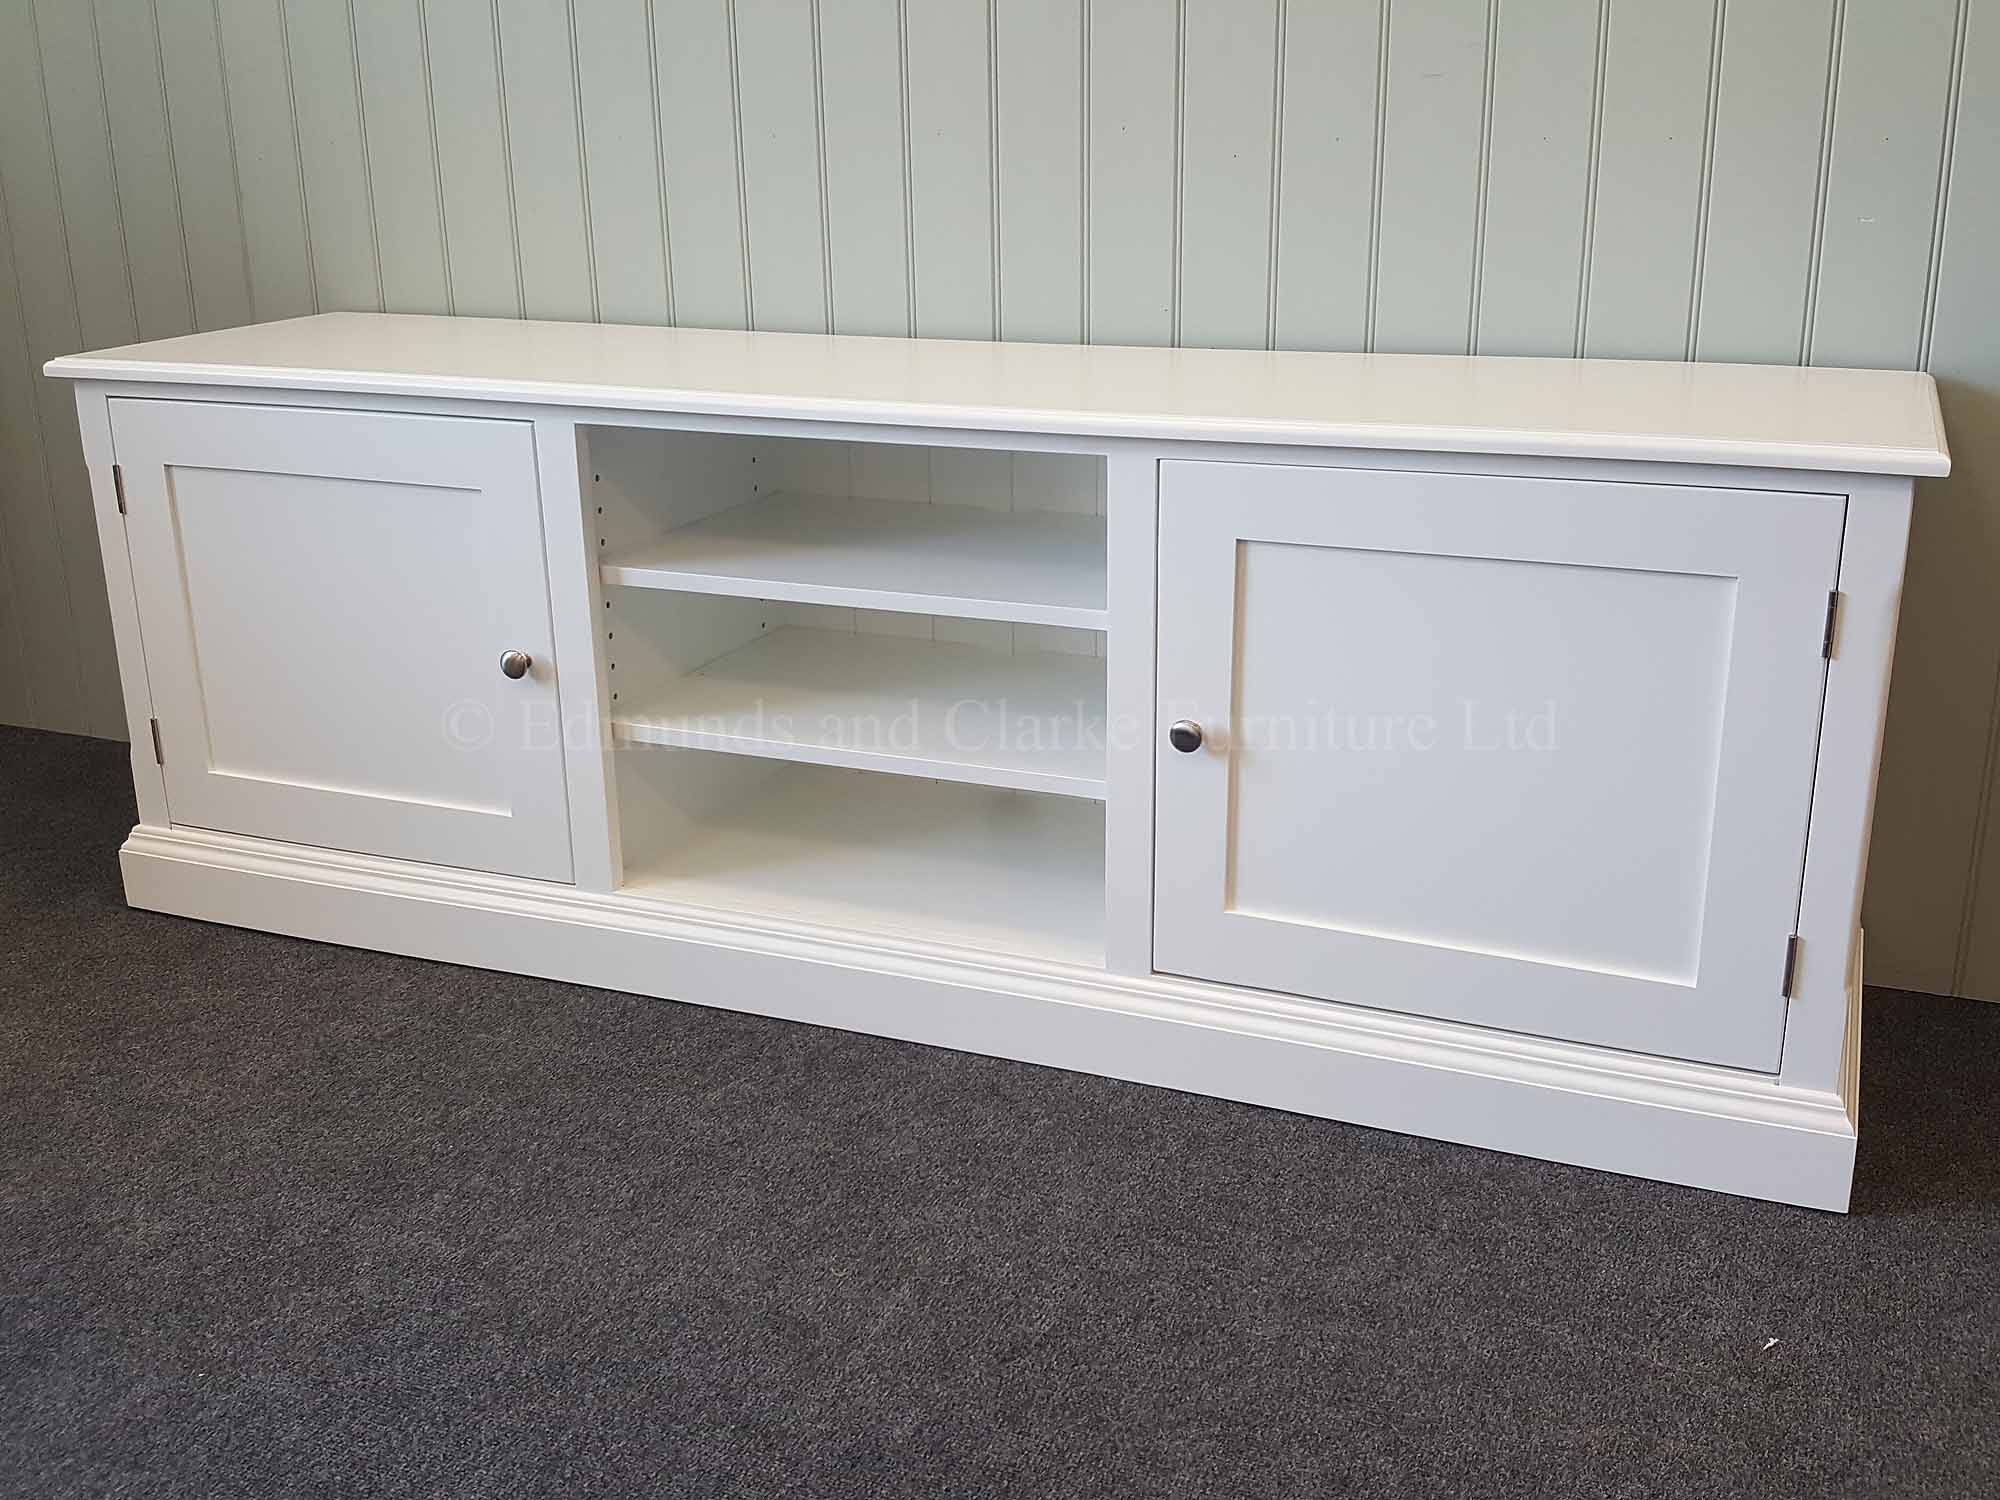 White painted tv entertainment stand adjustable central shelves door either side